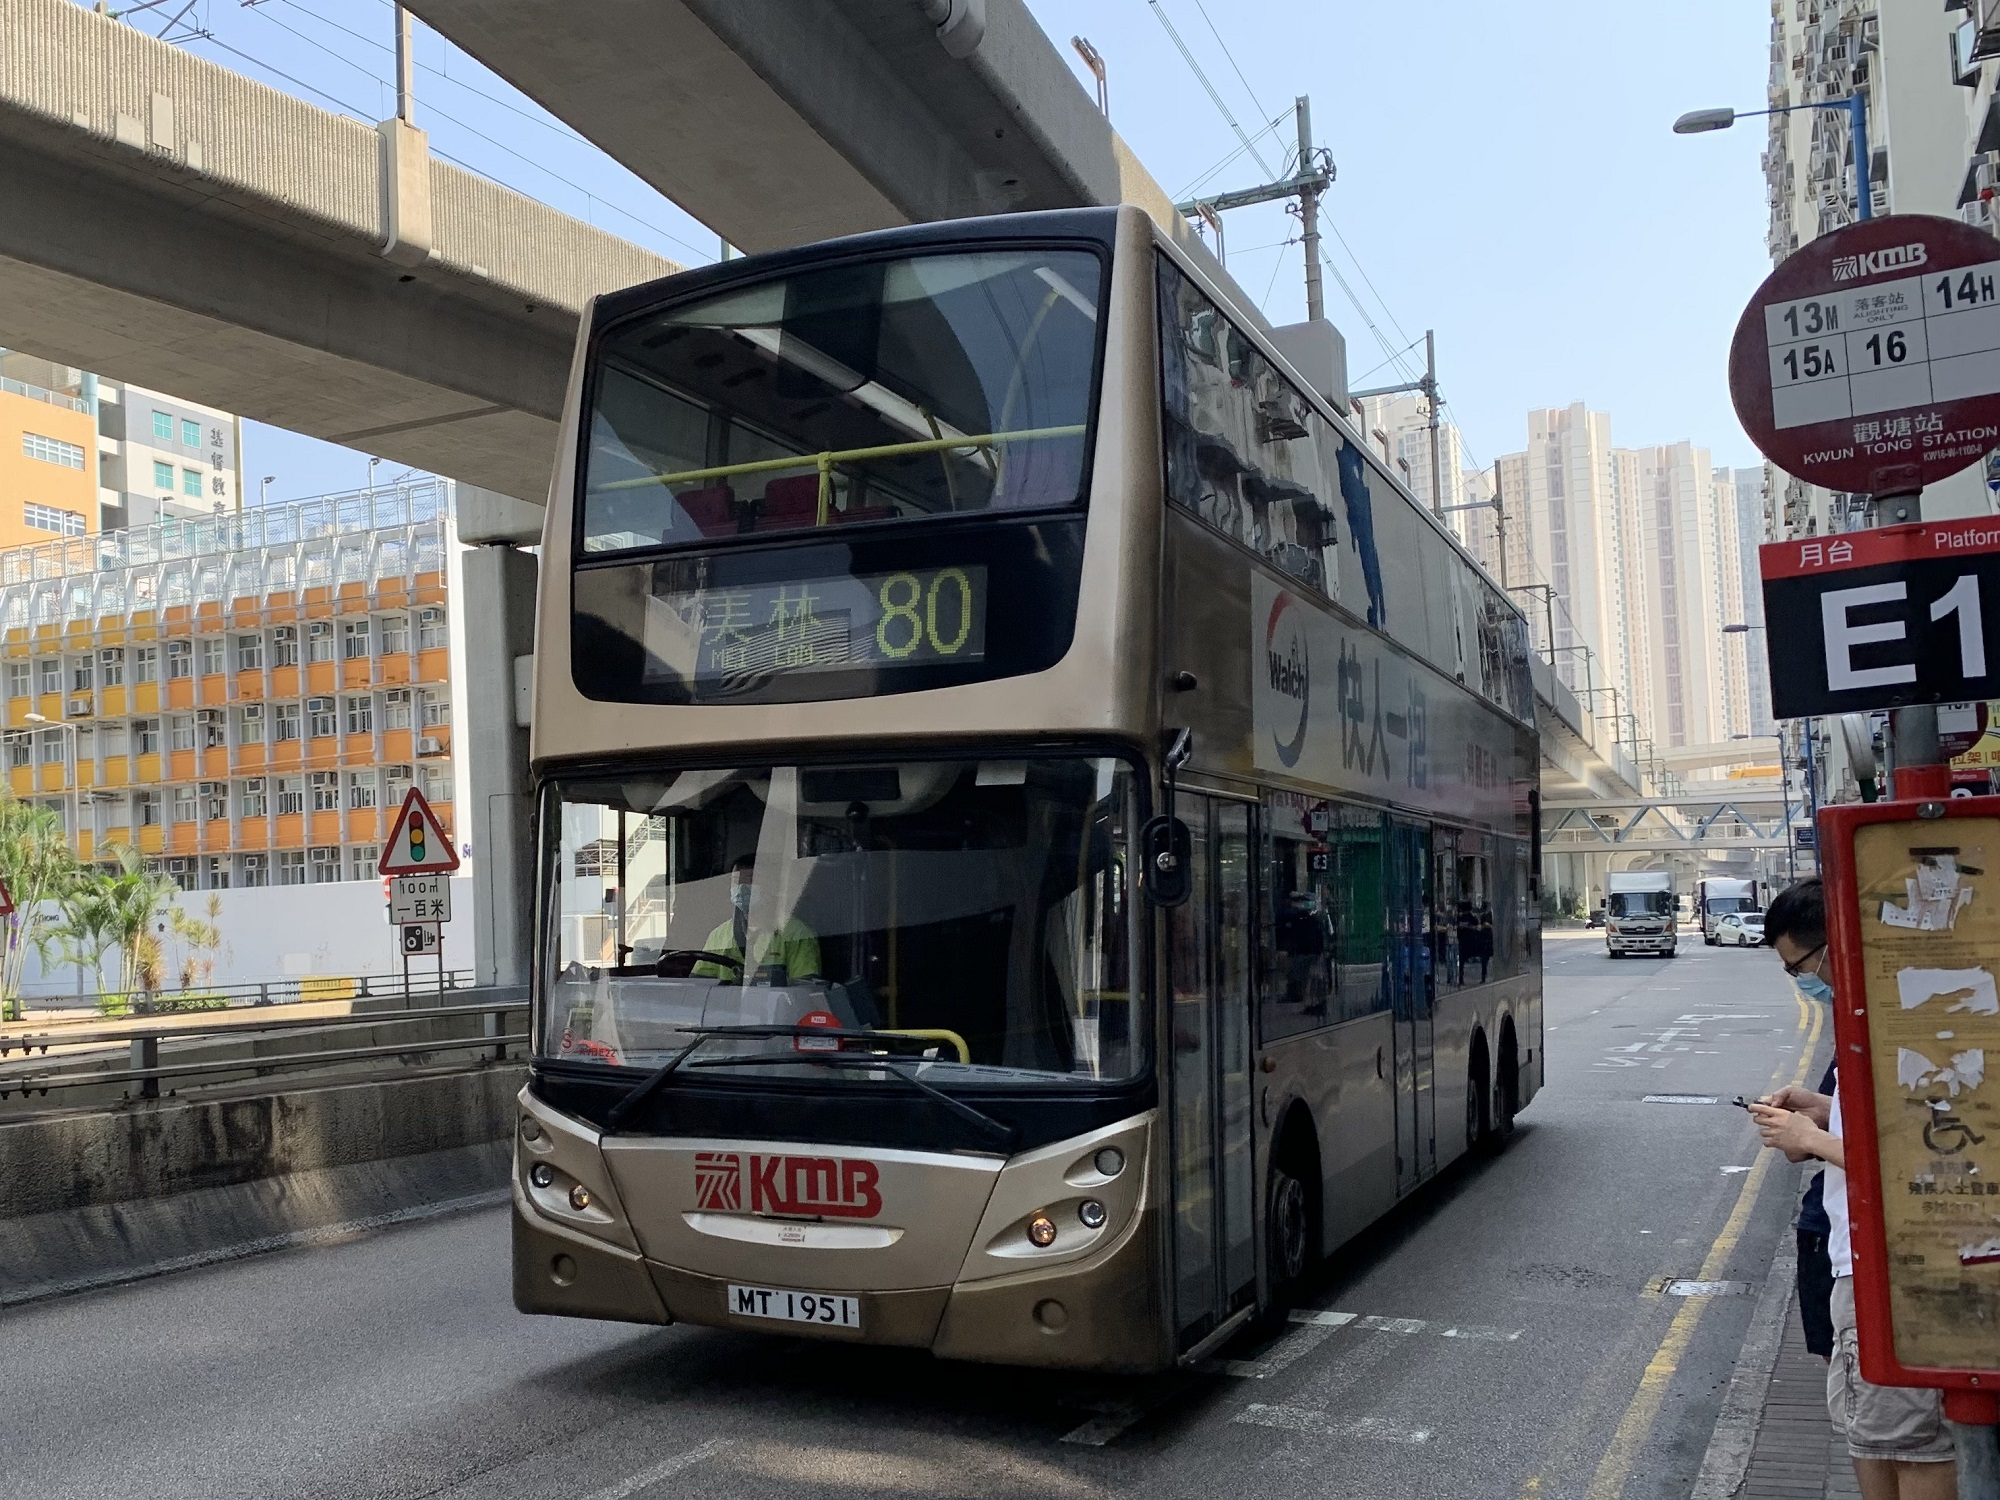 Recent research from Faculty of Medicine at the University of Hong Kong: Cardiovascular Risks in Bus Drivers in Hong Kong in Relation to Road Safety